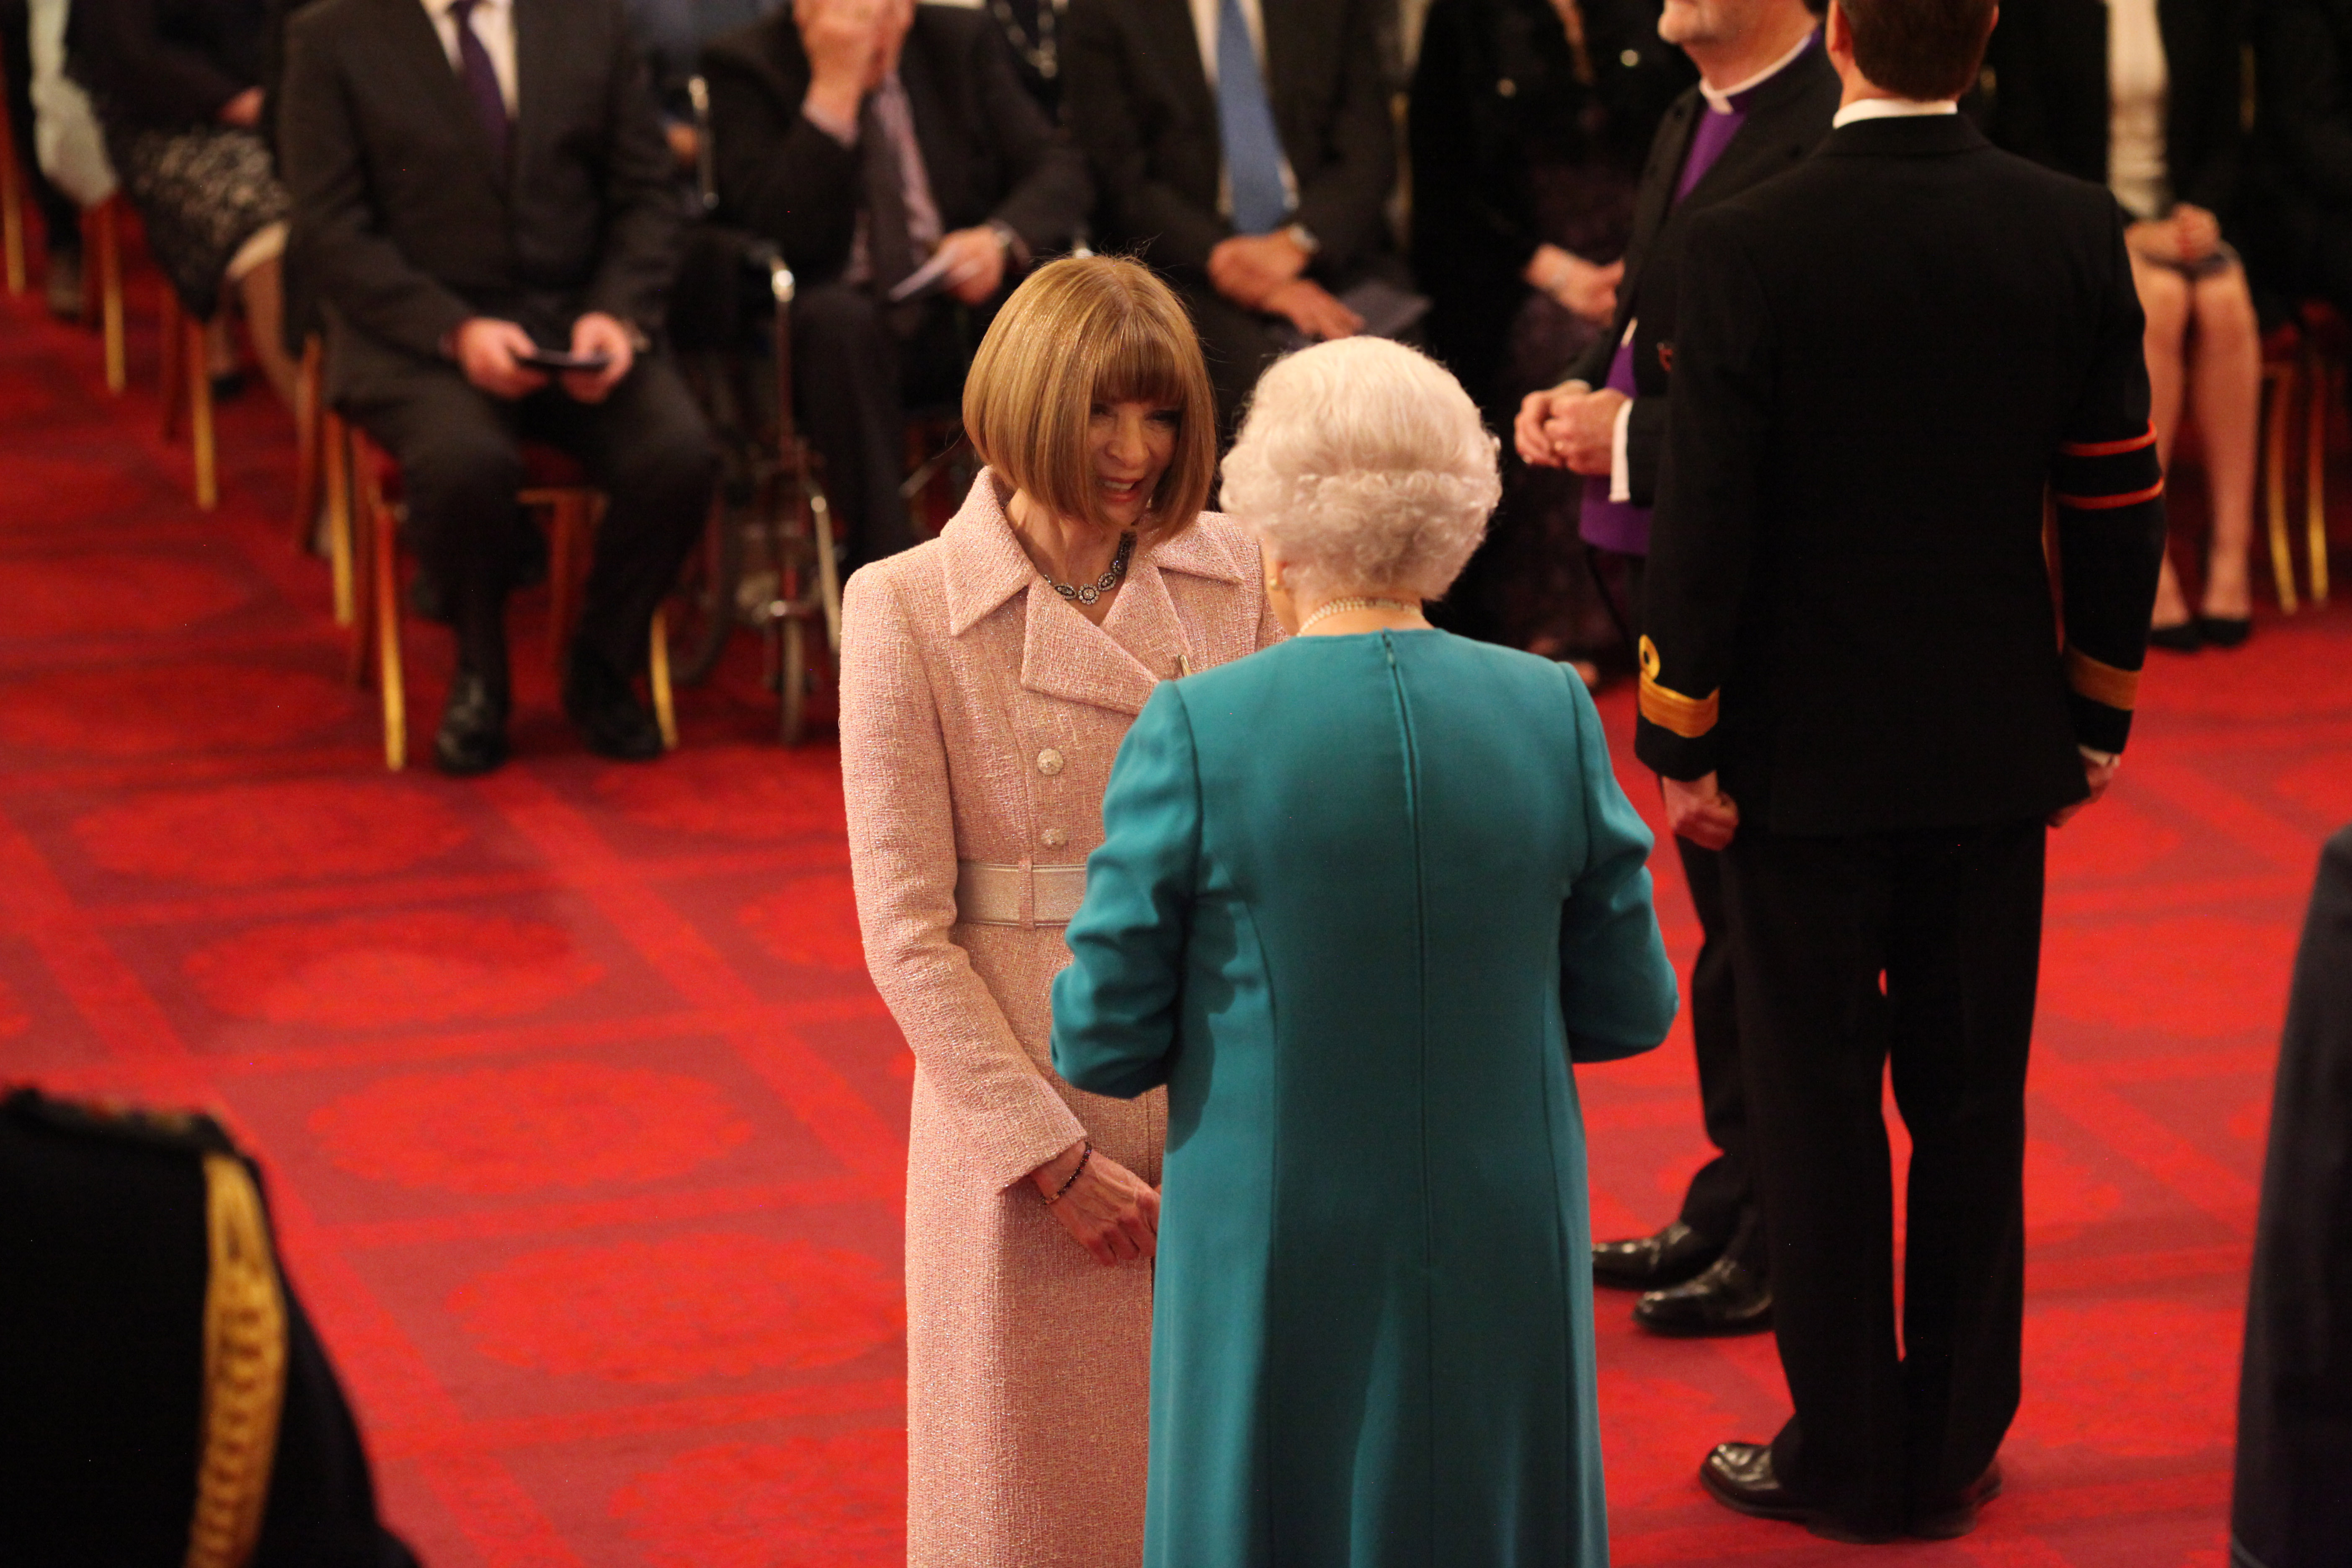 The Queen gives Anna Wintour a damehood at Buckingham Palace